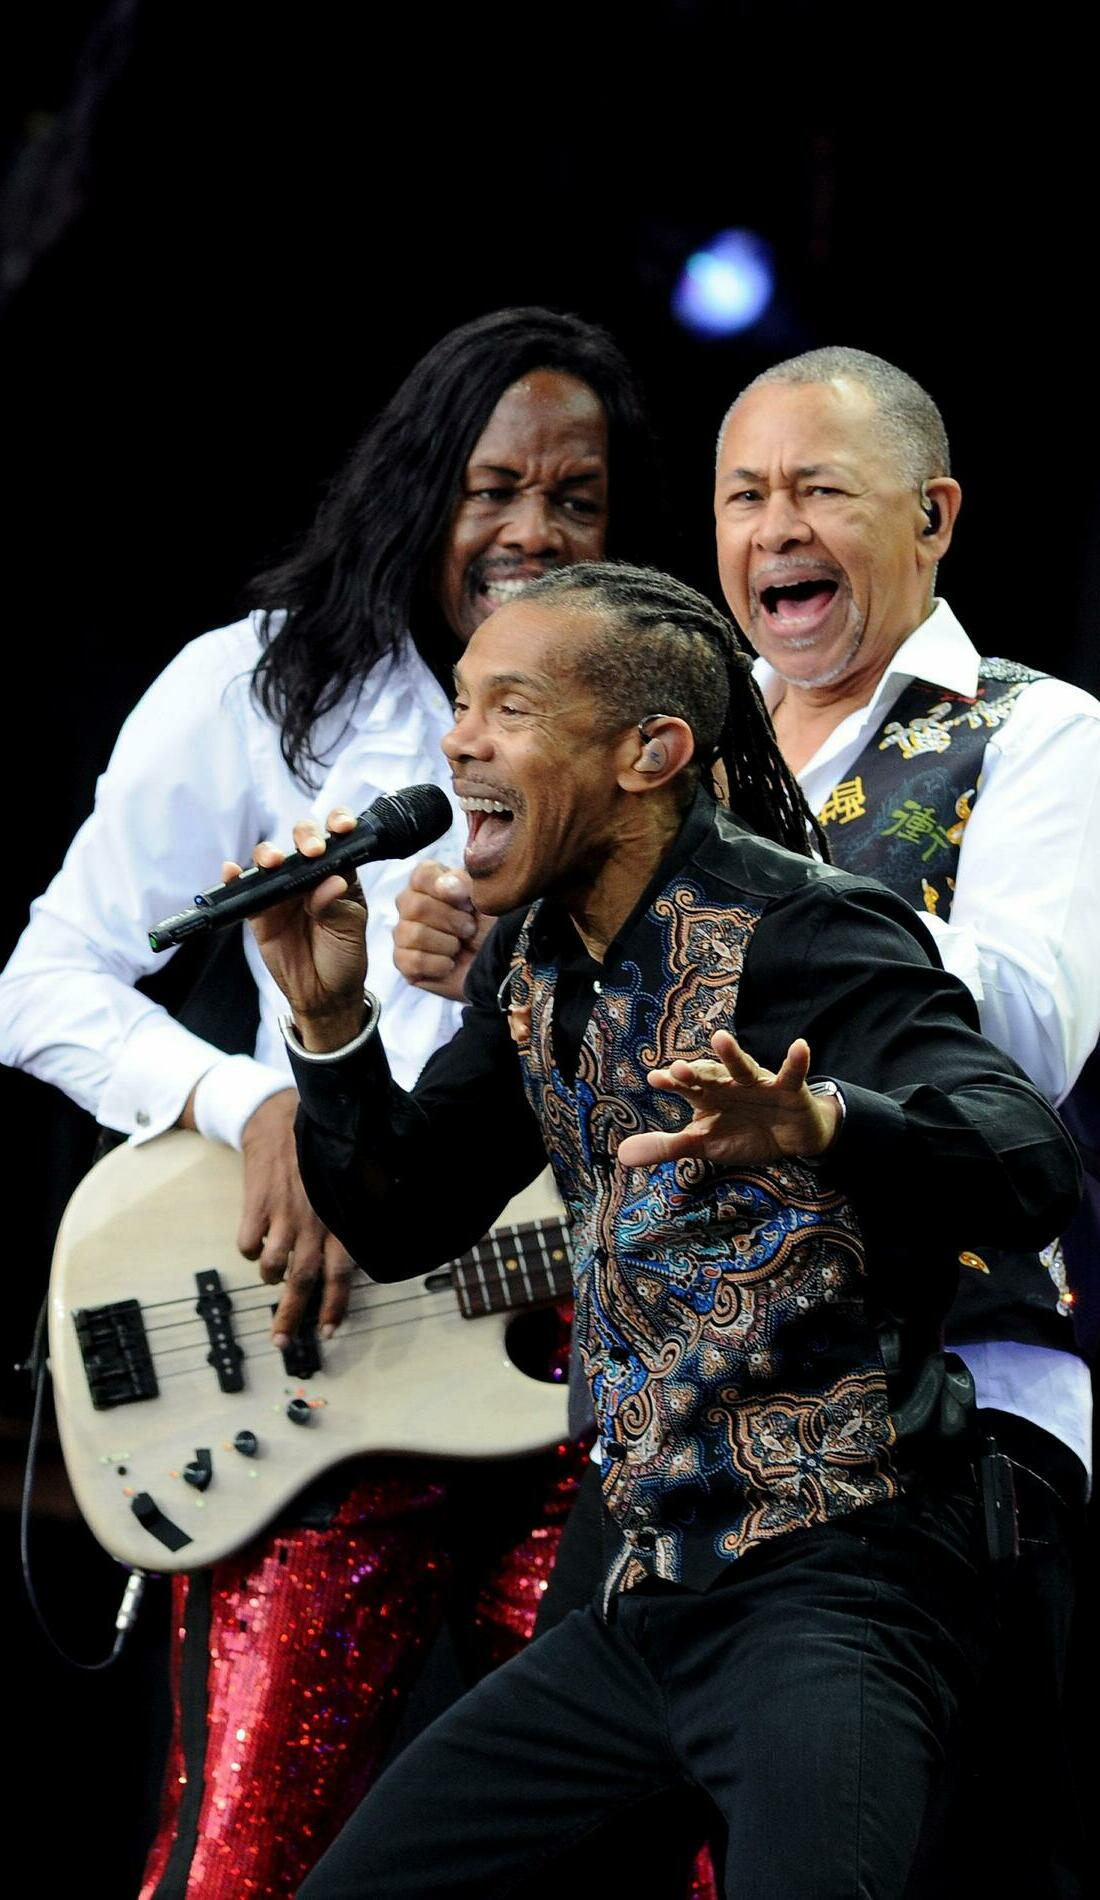 A Earth, Wind & Fire live event